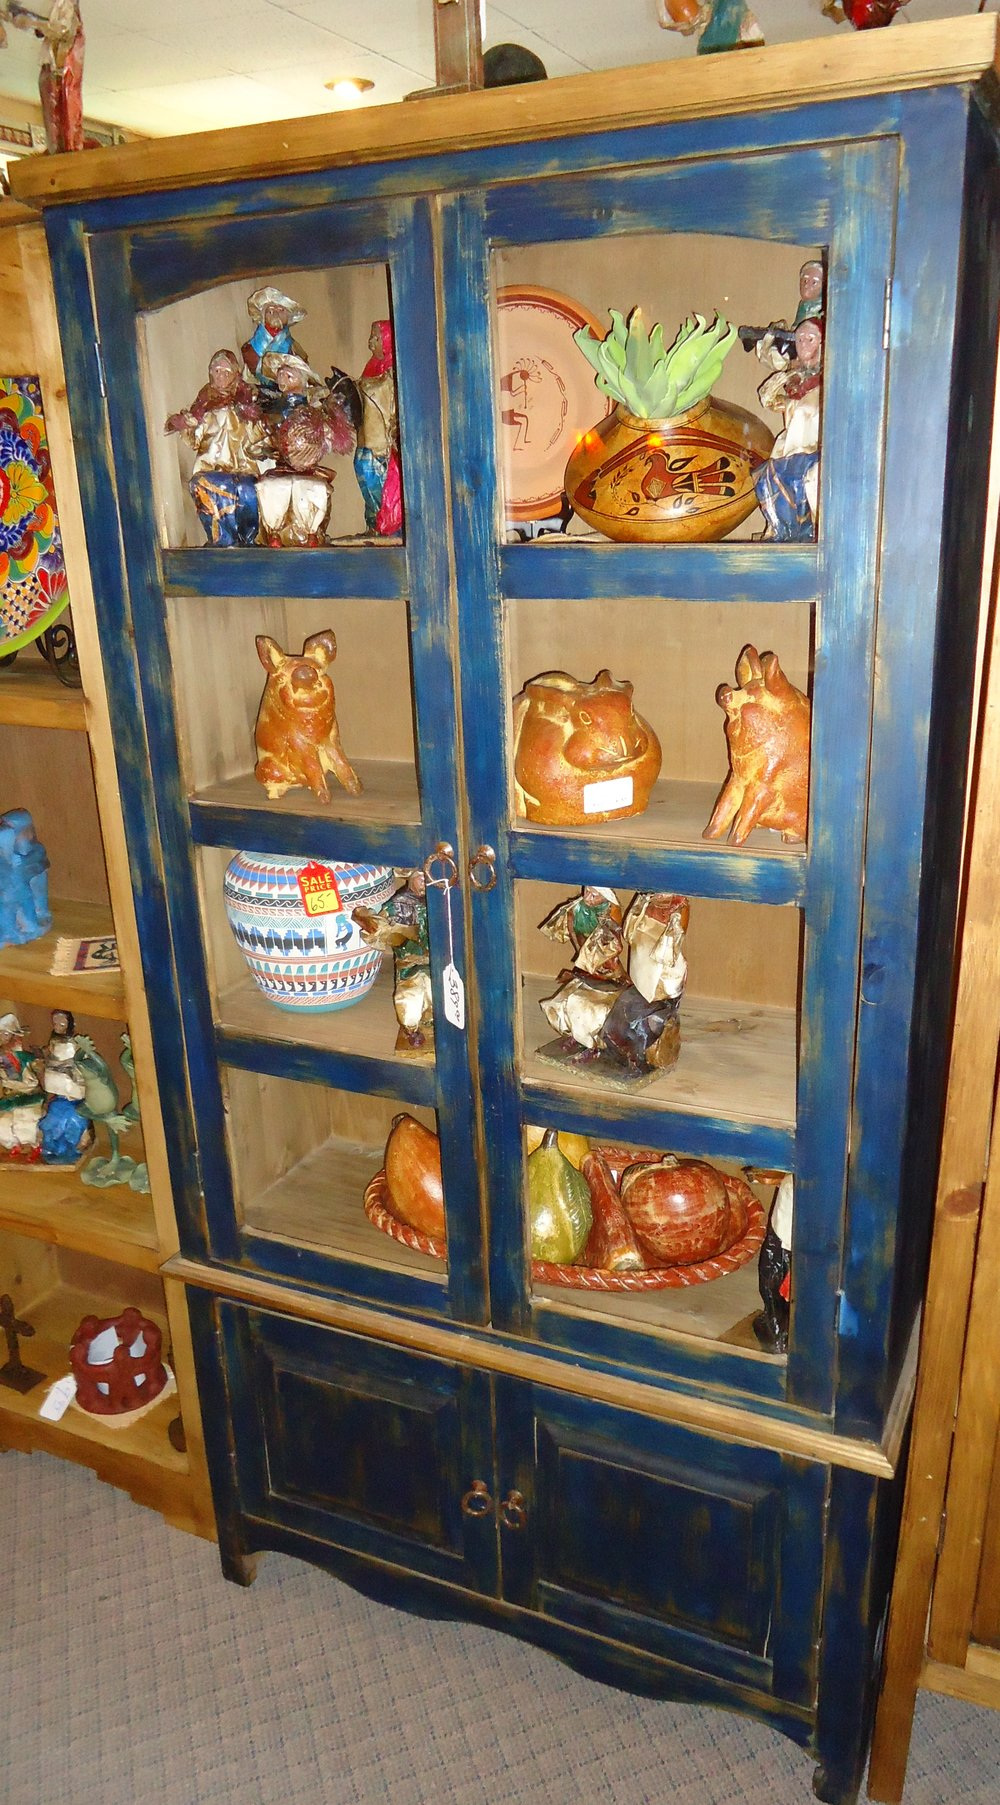 #4516 BOOK CHIHUAHUA GLASS BLUE 39 X 13 X 72 389..JPG